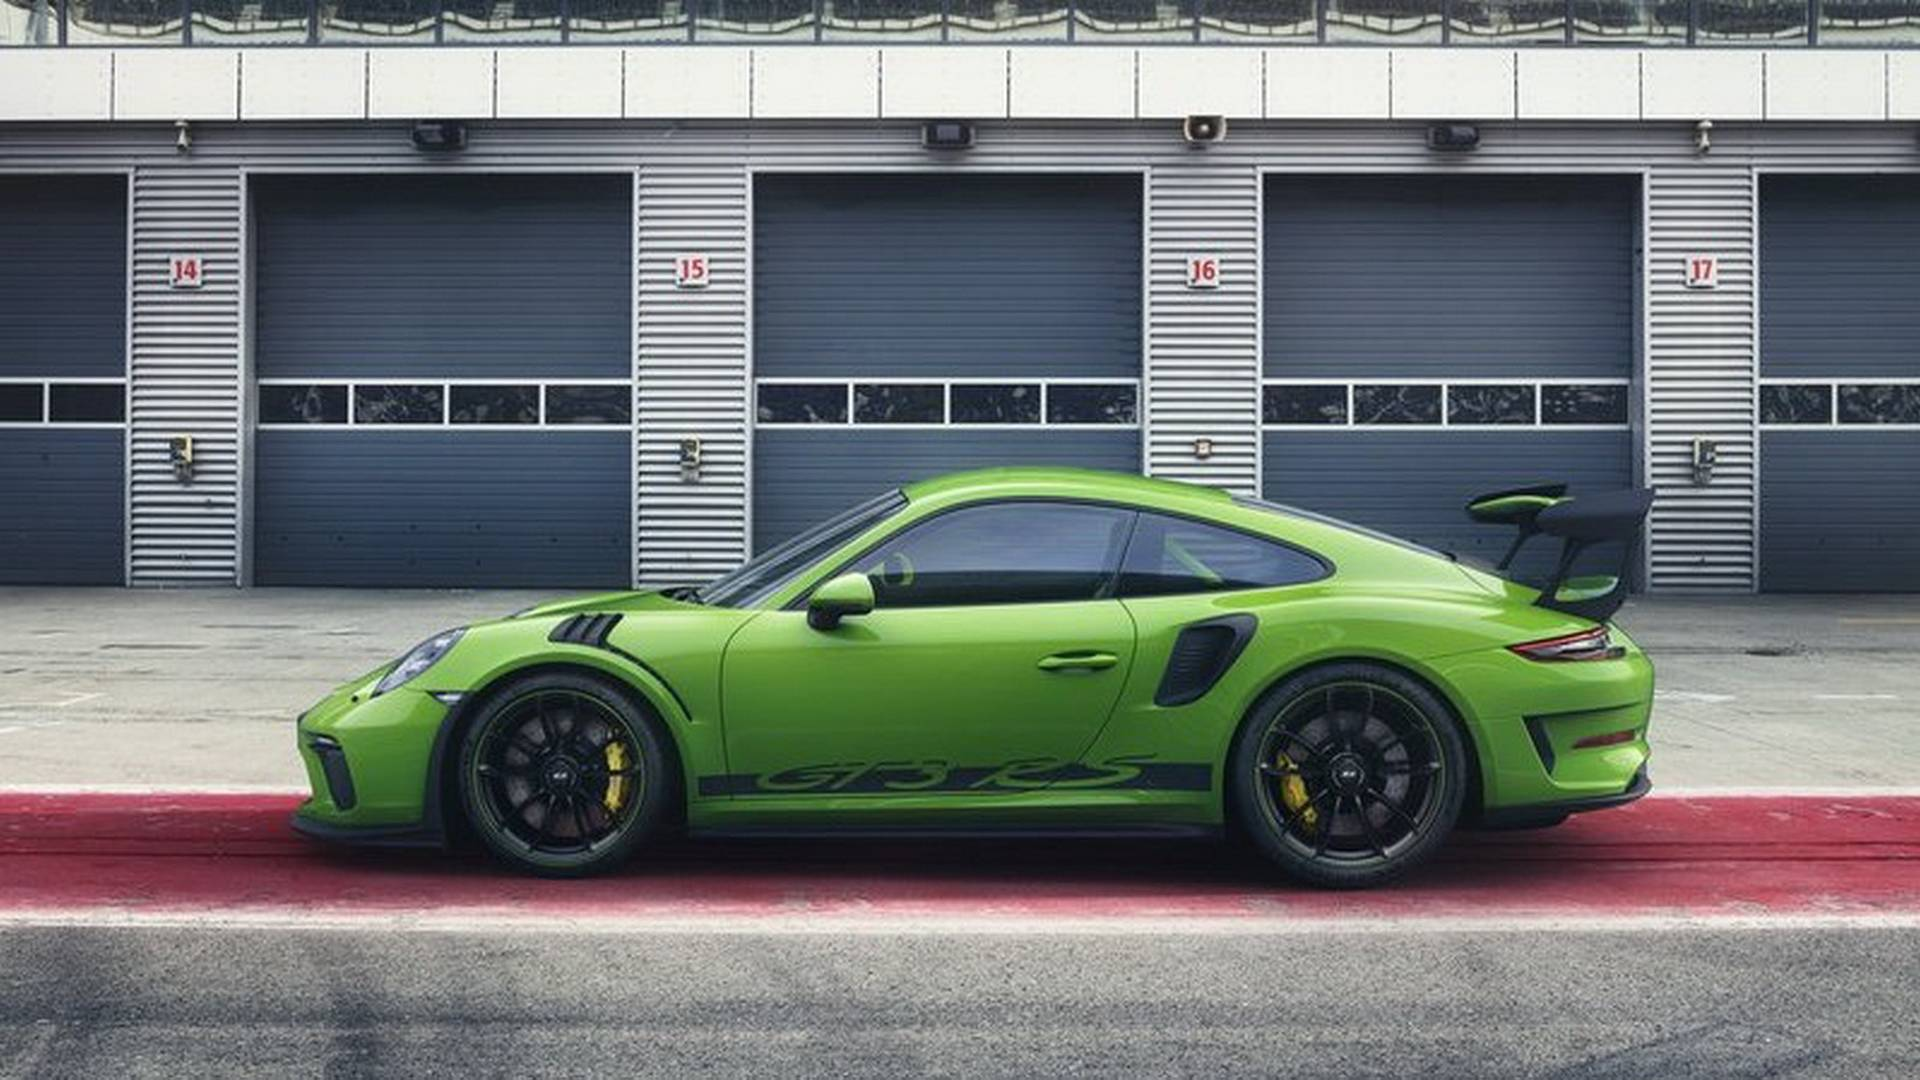 2019-porsche-911-gt3-rs-facelift-9912-leaked-looks-great-in-mamba-green_1.jpg